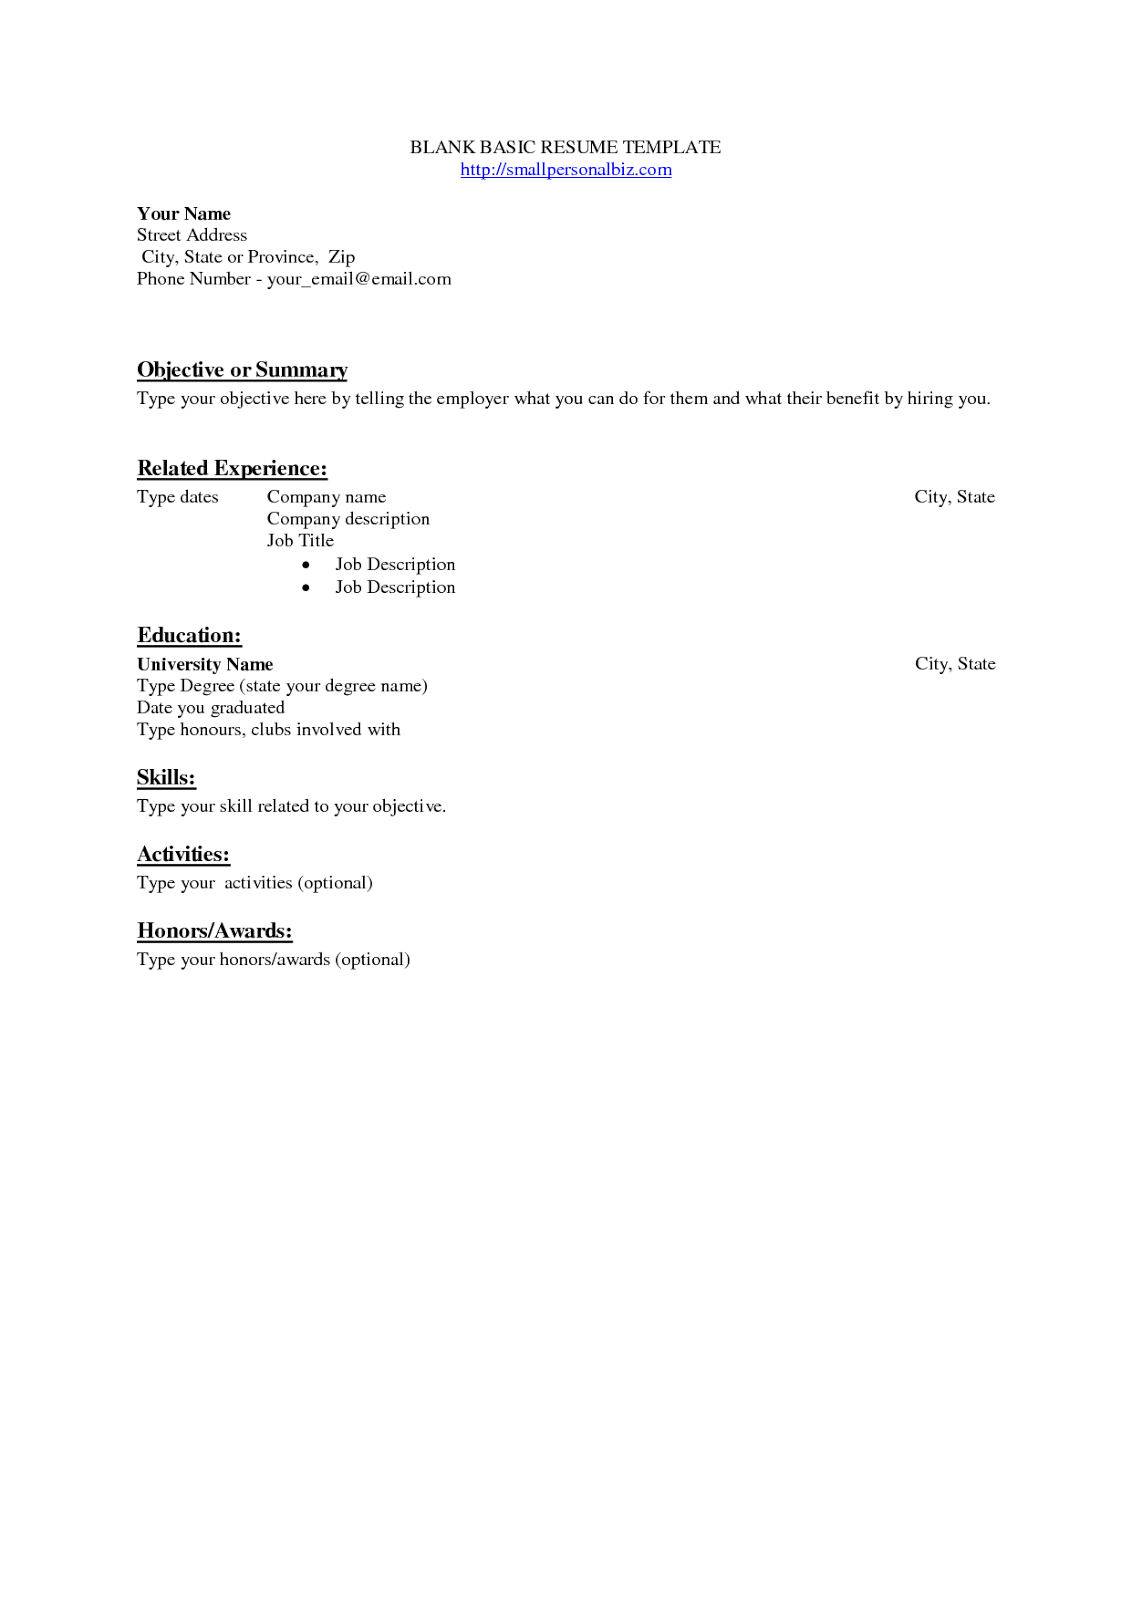 standard cv template 2 download simple resume for job resume file – Resume Format Word File